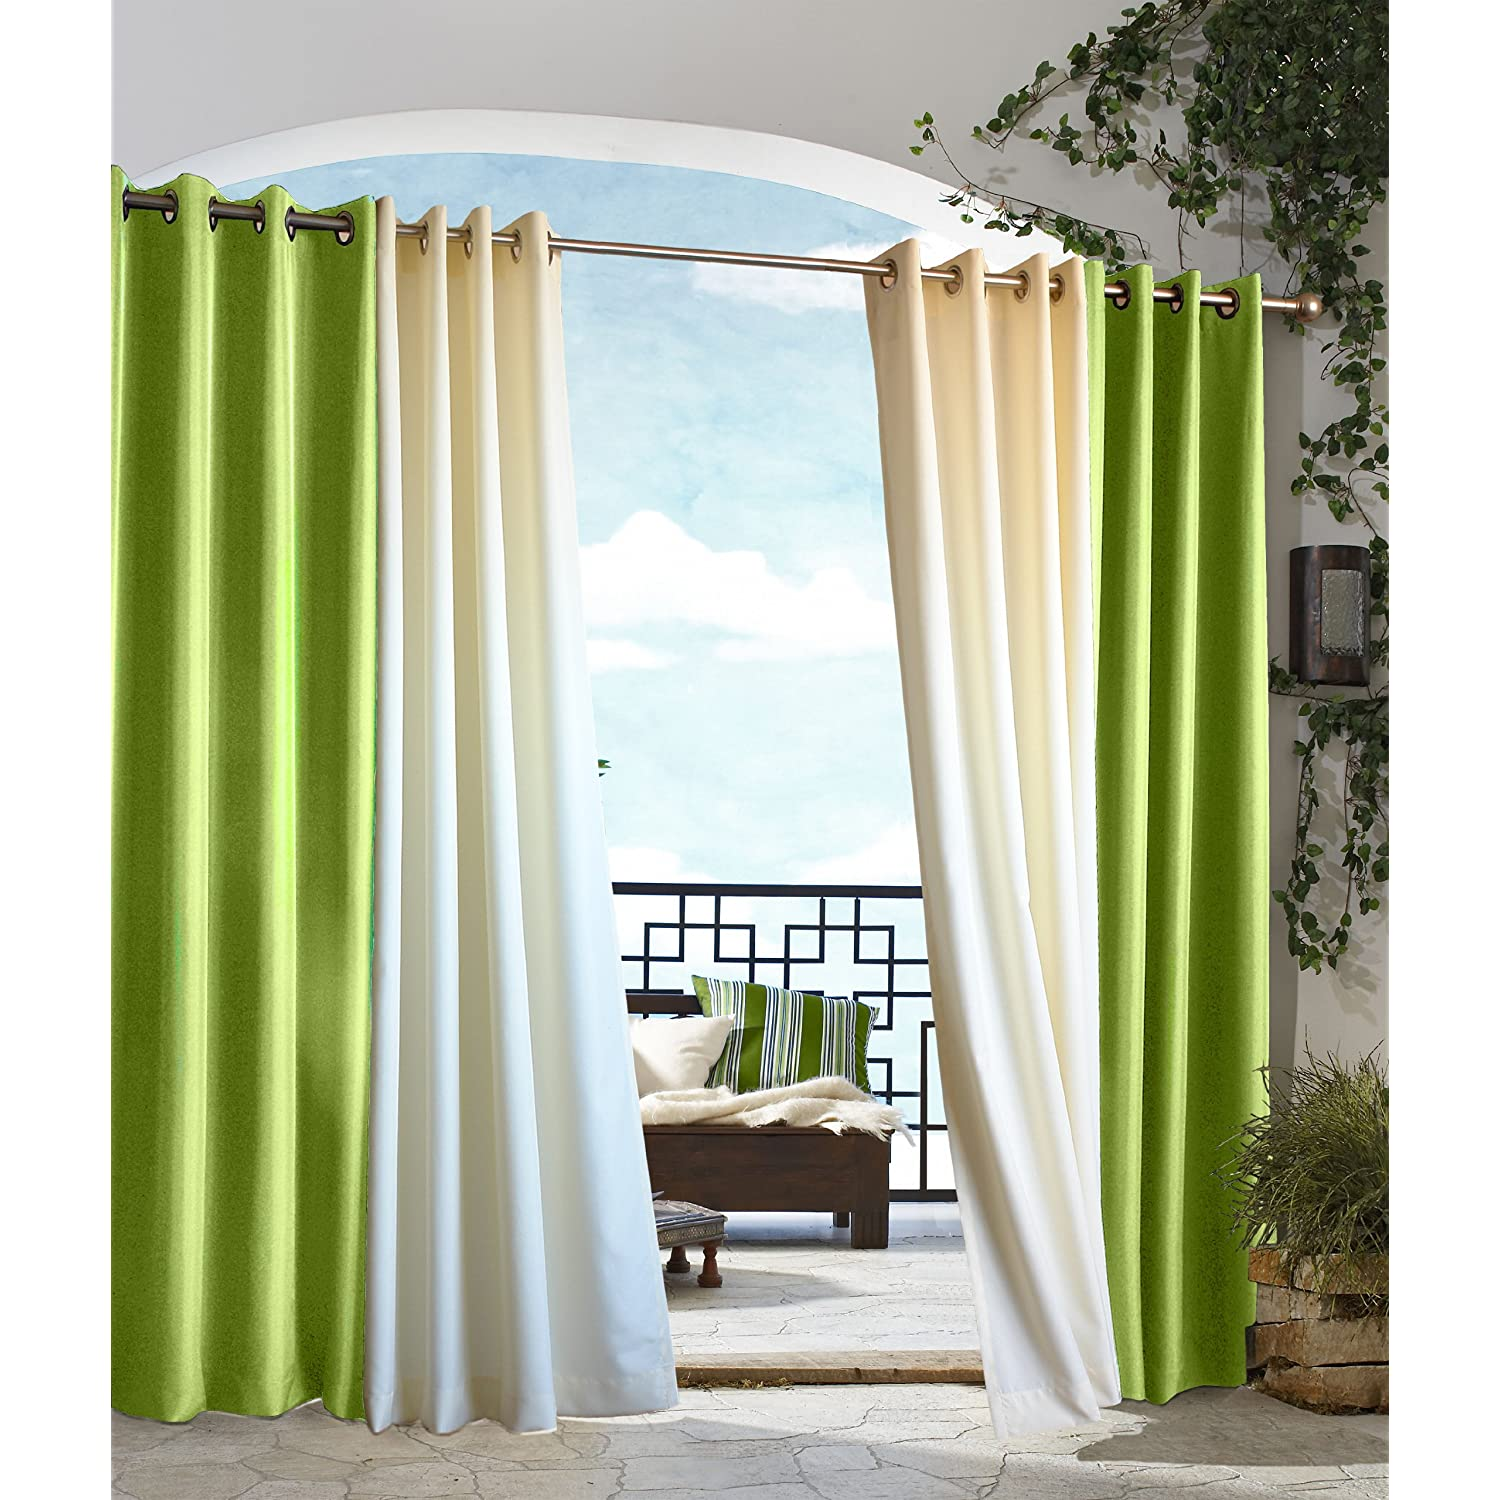 Commonwealth Home Fashions Gazebo Outdoor Solid Grommet Top Curtain Panel in Green at Sears.com